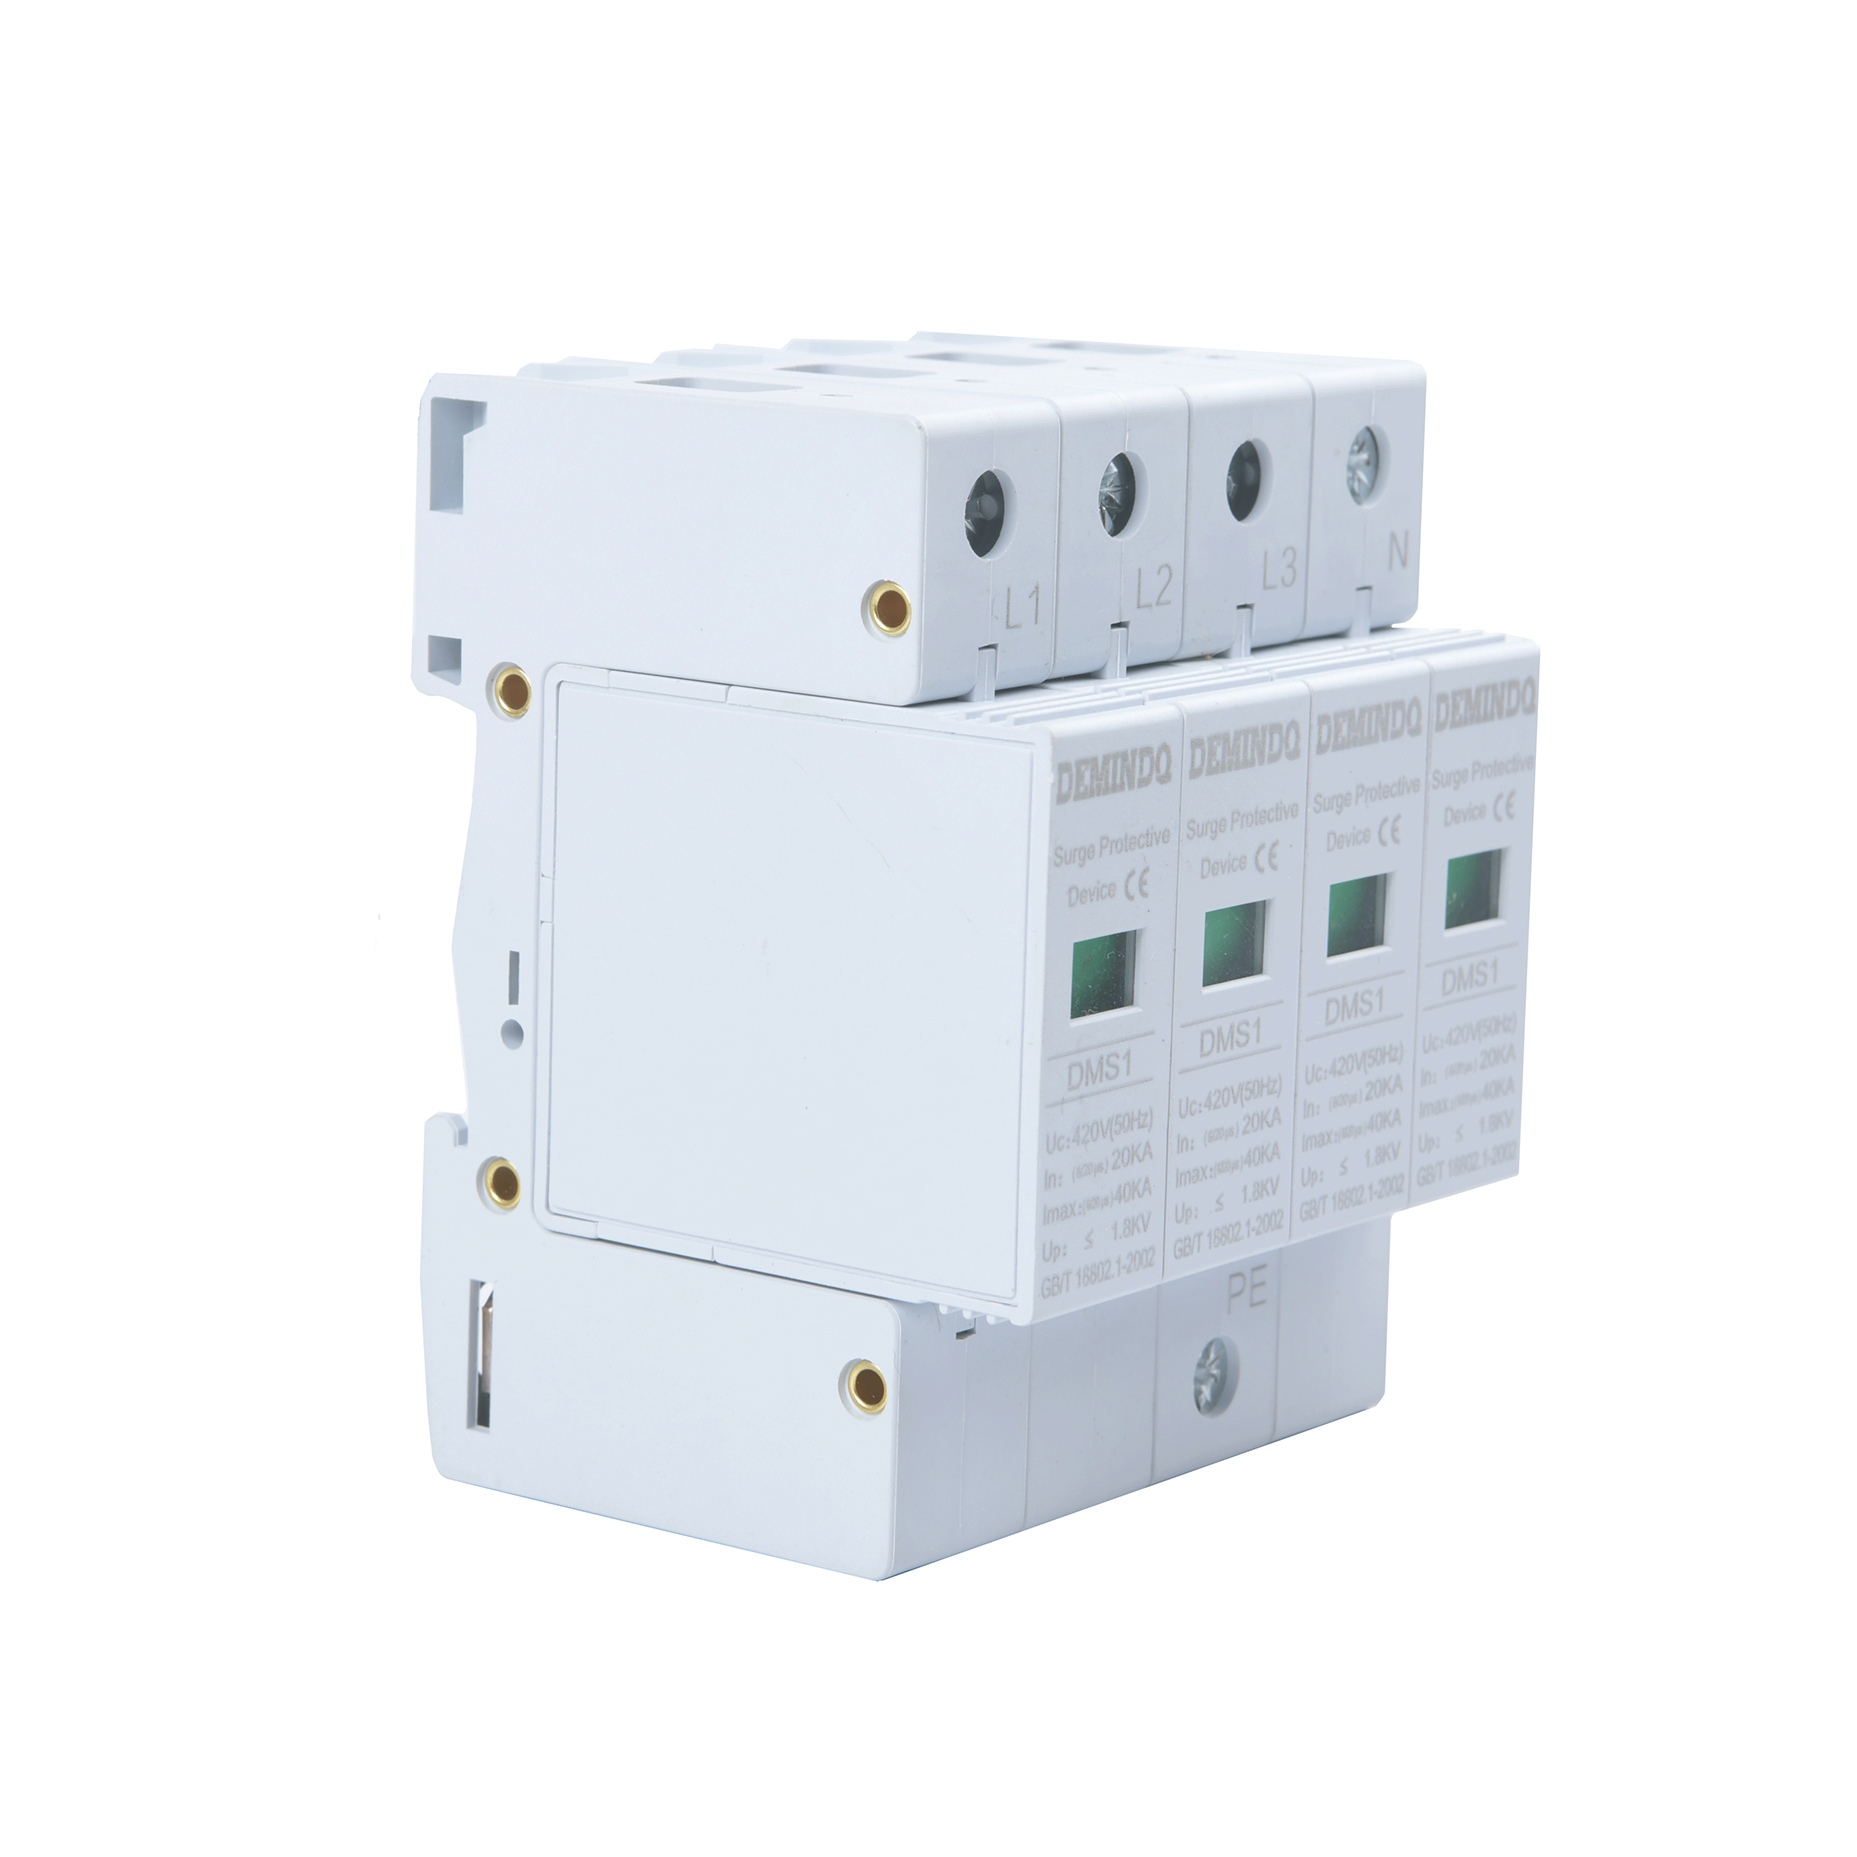 385v Ac Power Surge Protection Three Phase Surge Protection Device